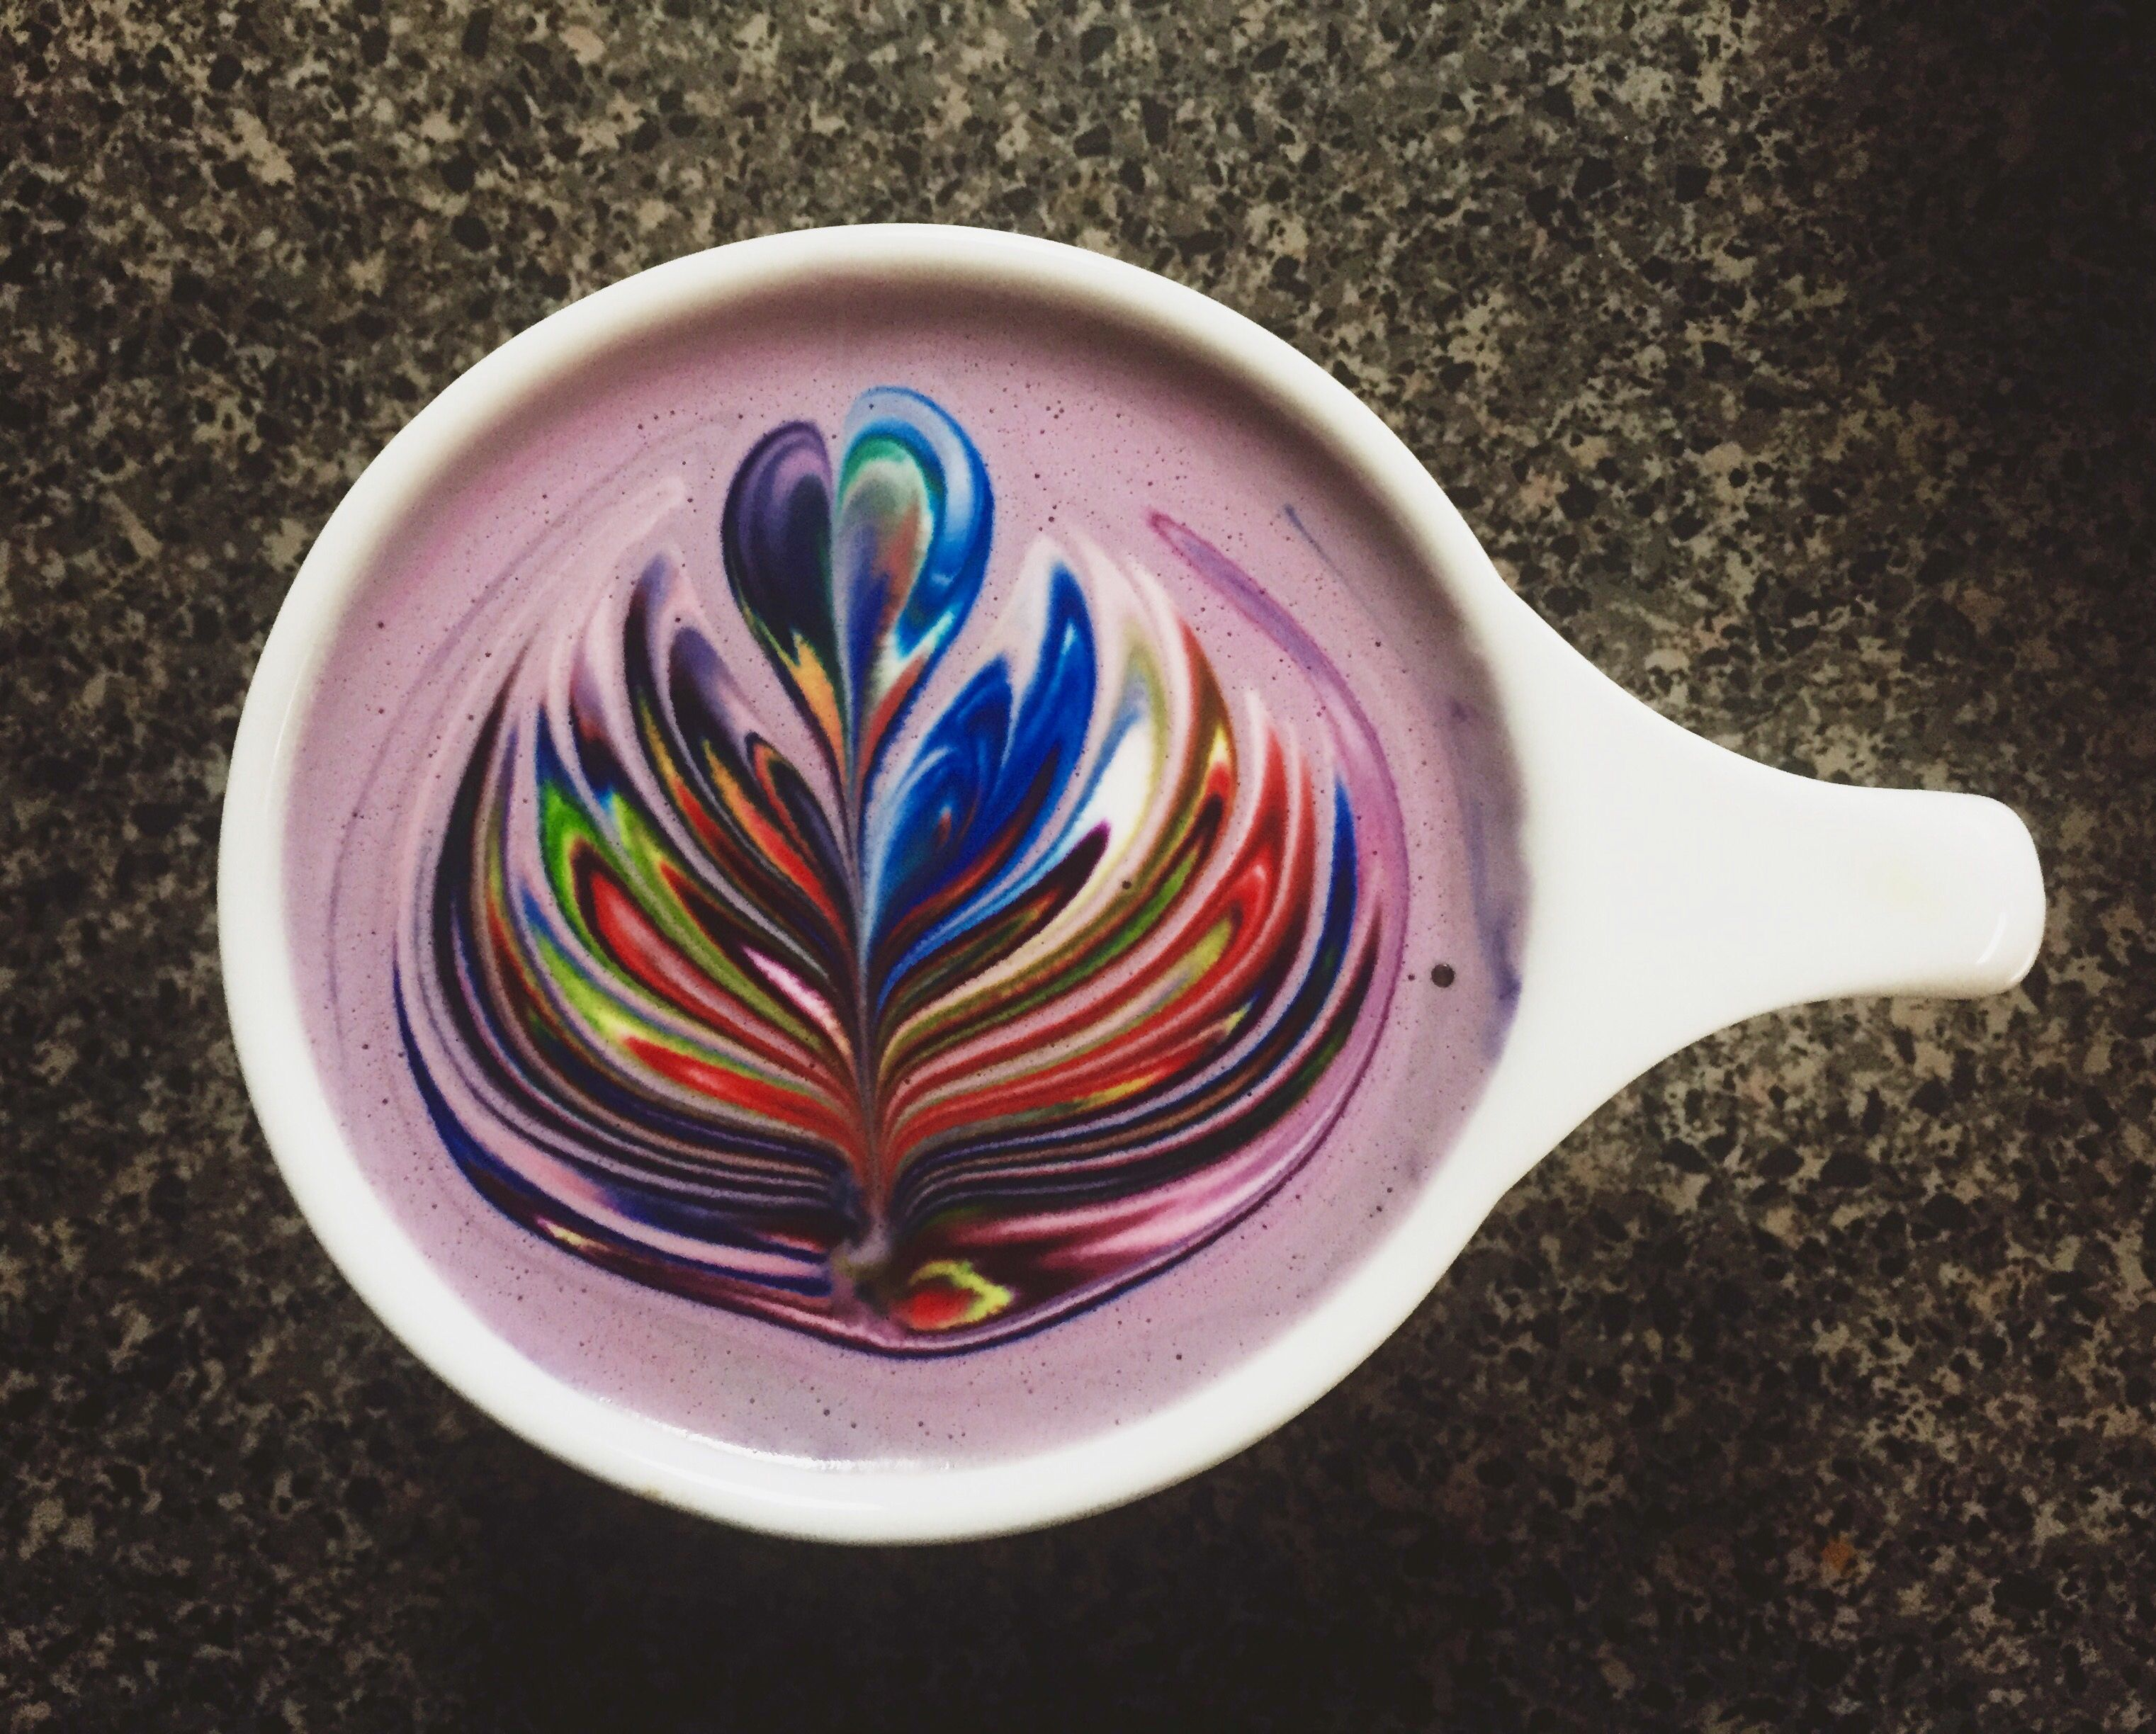 Colored free pour latte art Coffee, Tea & Espresso Appliances - http://amzn.to/2iiPu7K